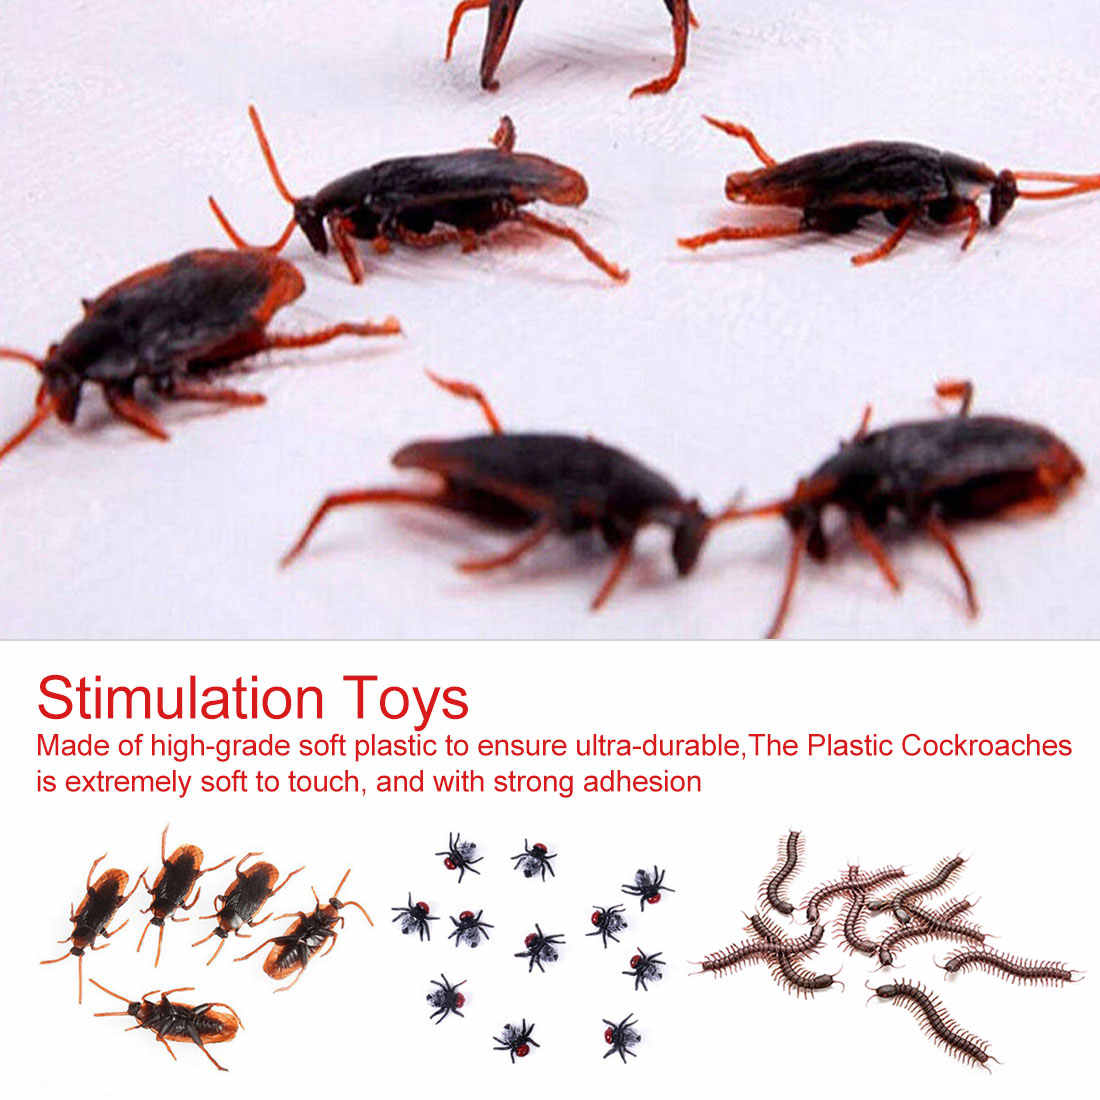 10Pcs Funny Fake Cockroach/Fly/Centipede Halloween Decoration Jokes Pranks Maker Fun Novelty Tricks Simulation False Toys